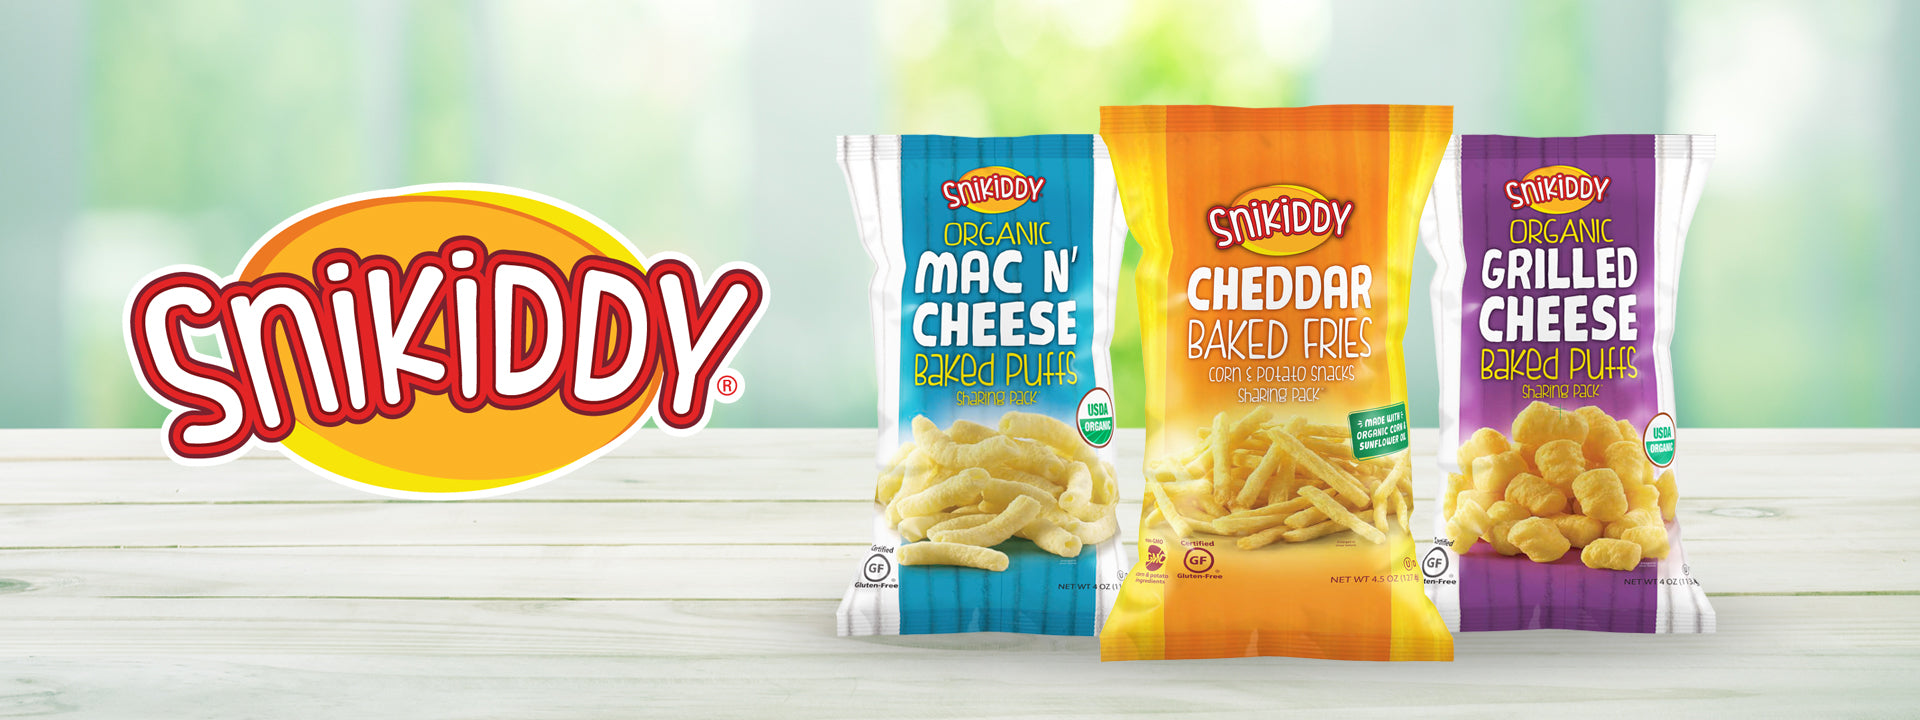 About Snikiddy | Utz Quality Foods - Our Snack Brands